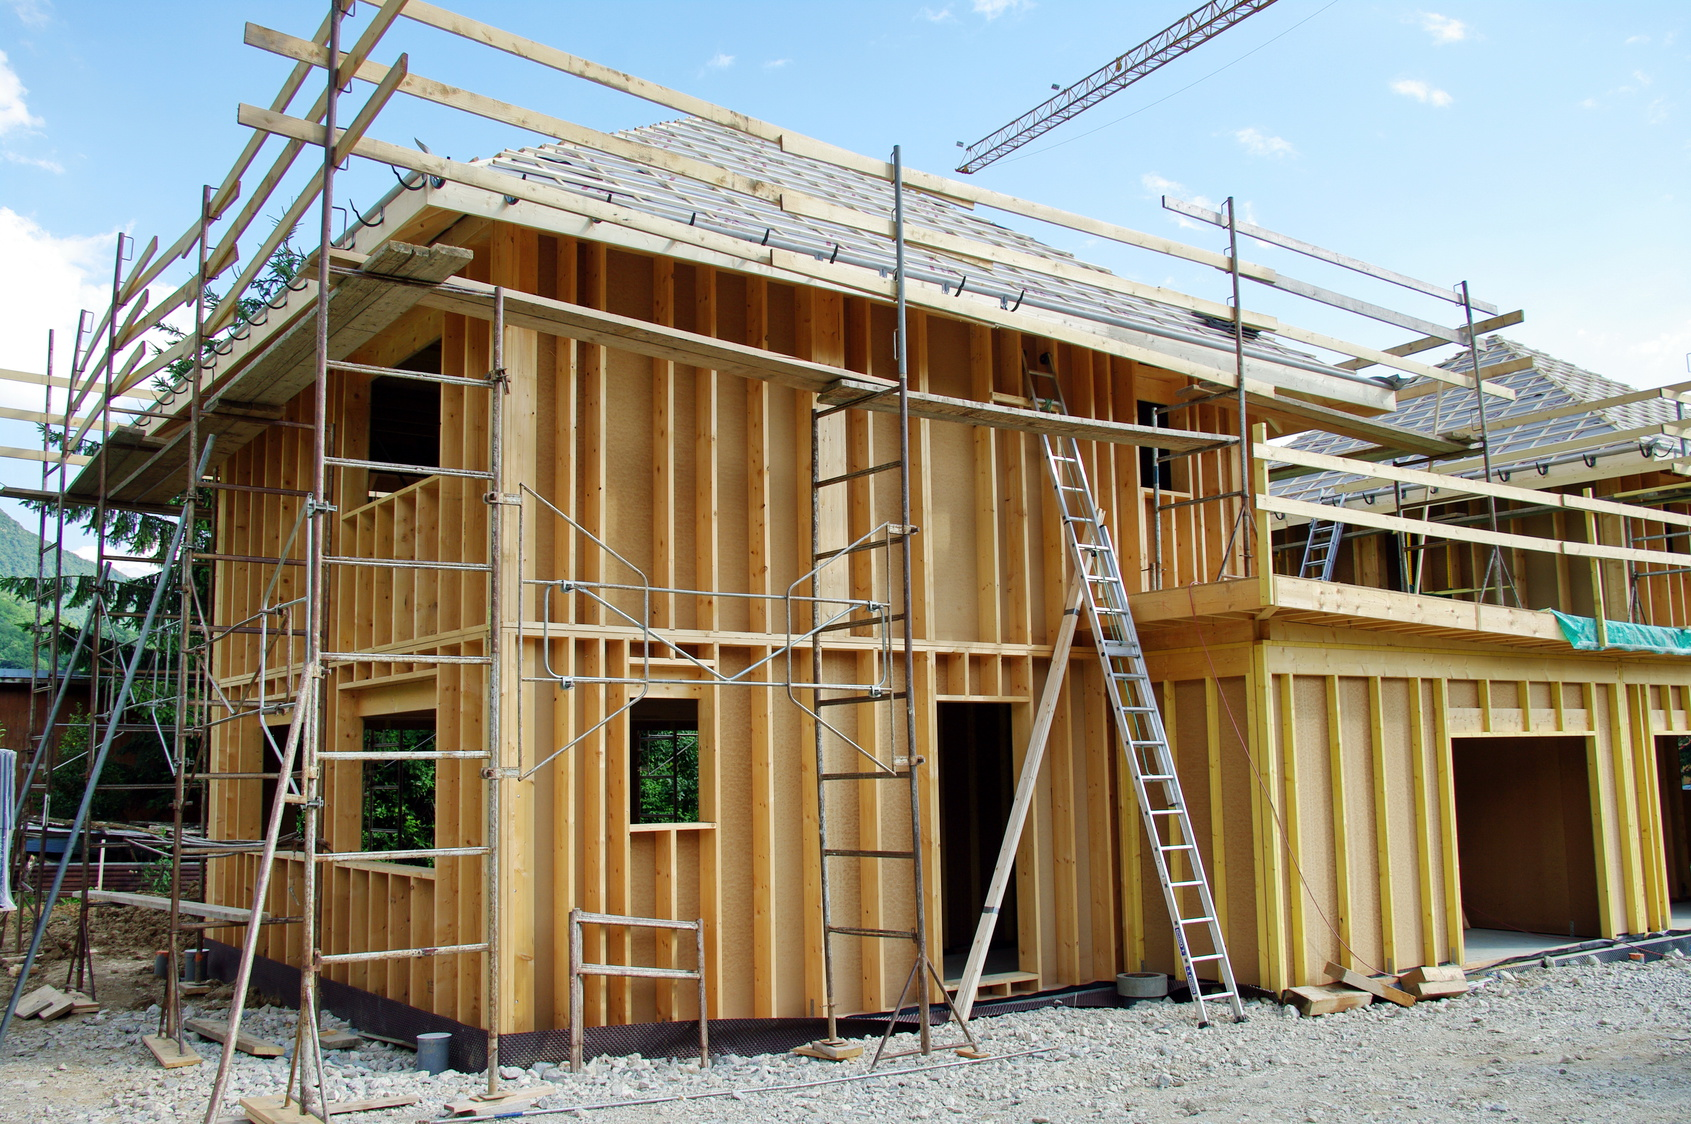 Les tapes de construction d une maison en kit for Aide pour construction maison